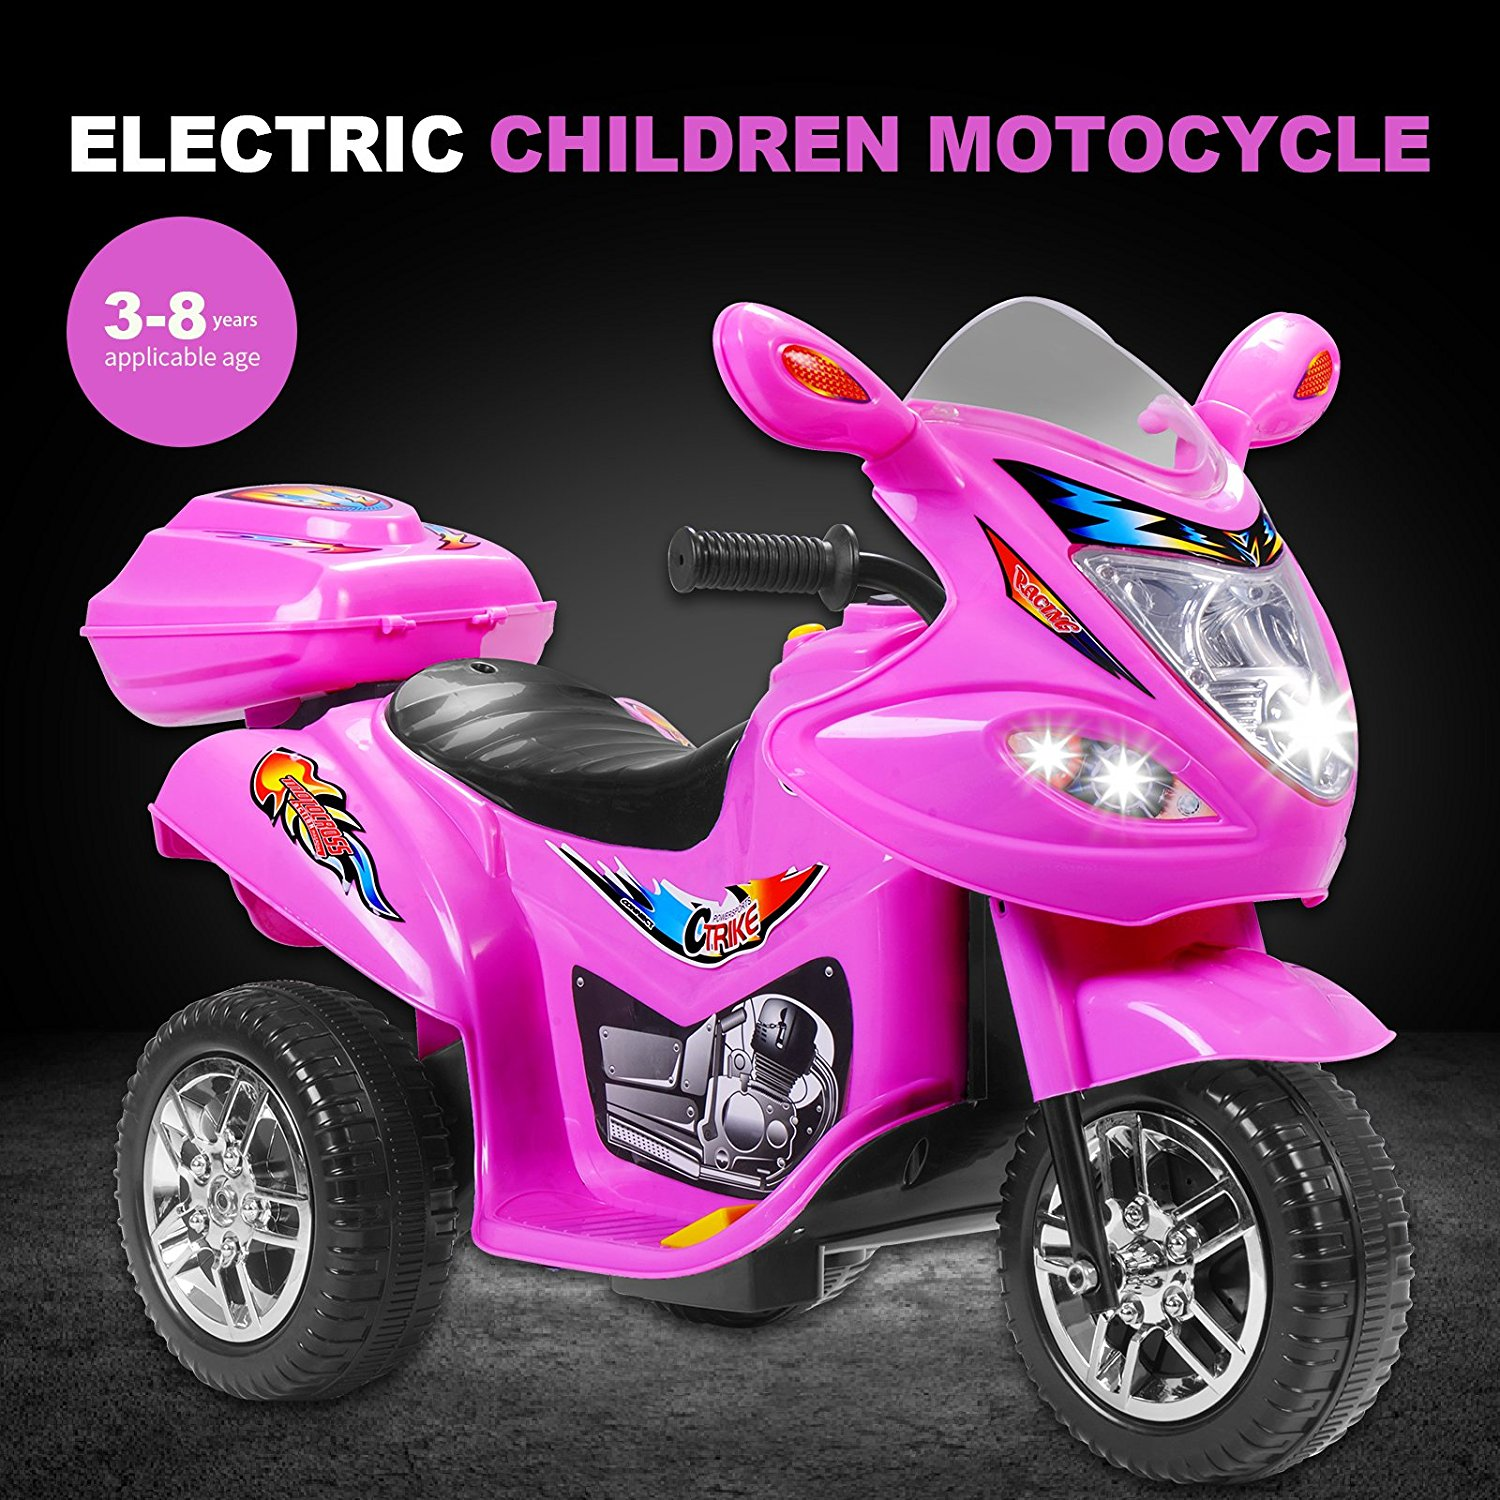 Red 6V Kids Ride on Motorcycle Toy Battery Powered Electric w/Remote Control